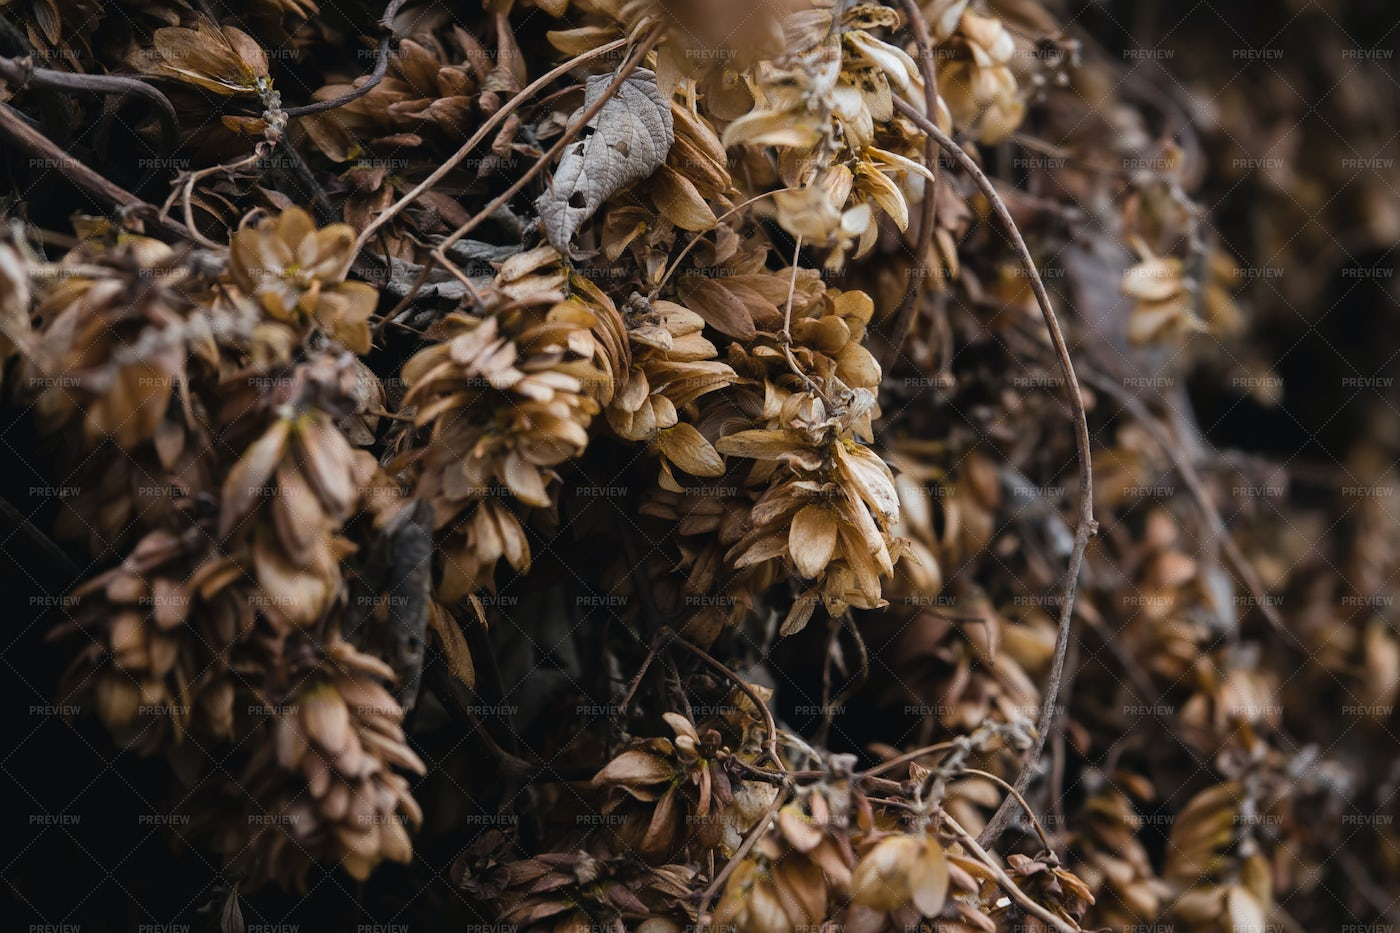 Dry Hop Bushes In Autumn: Stock Photos